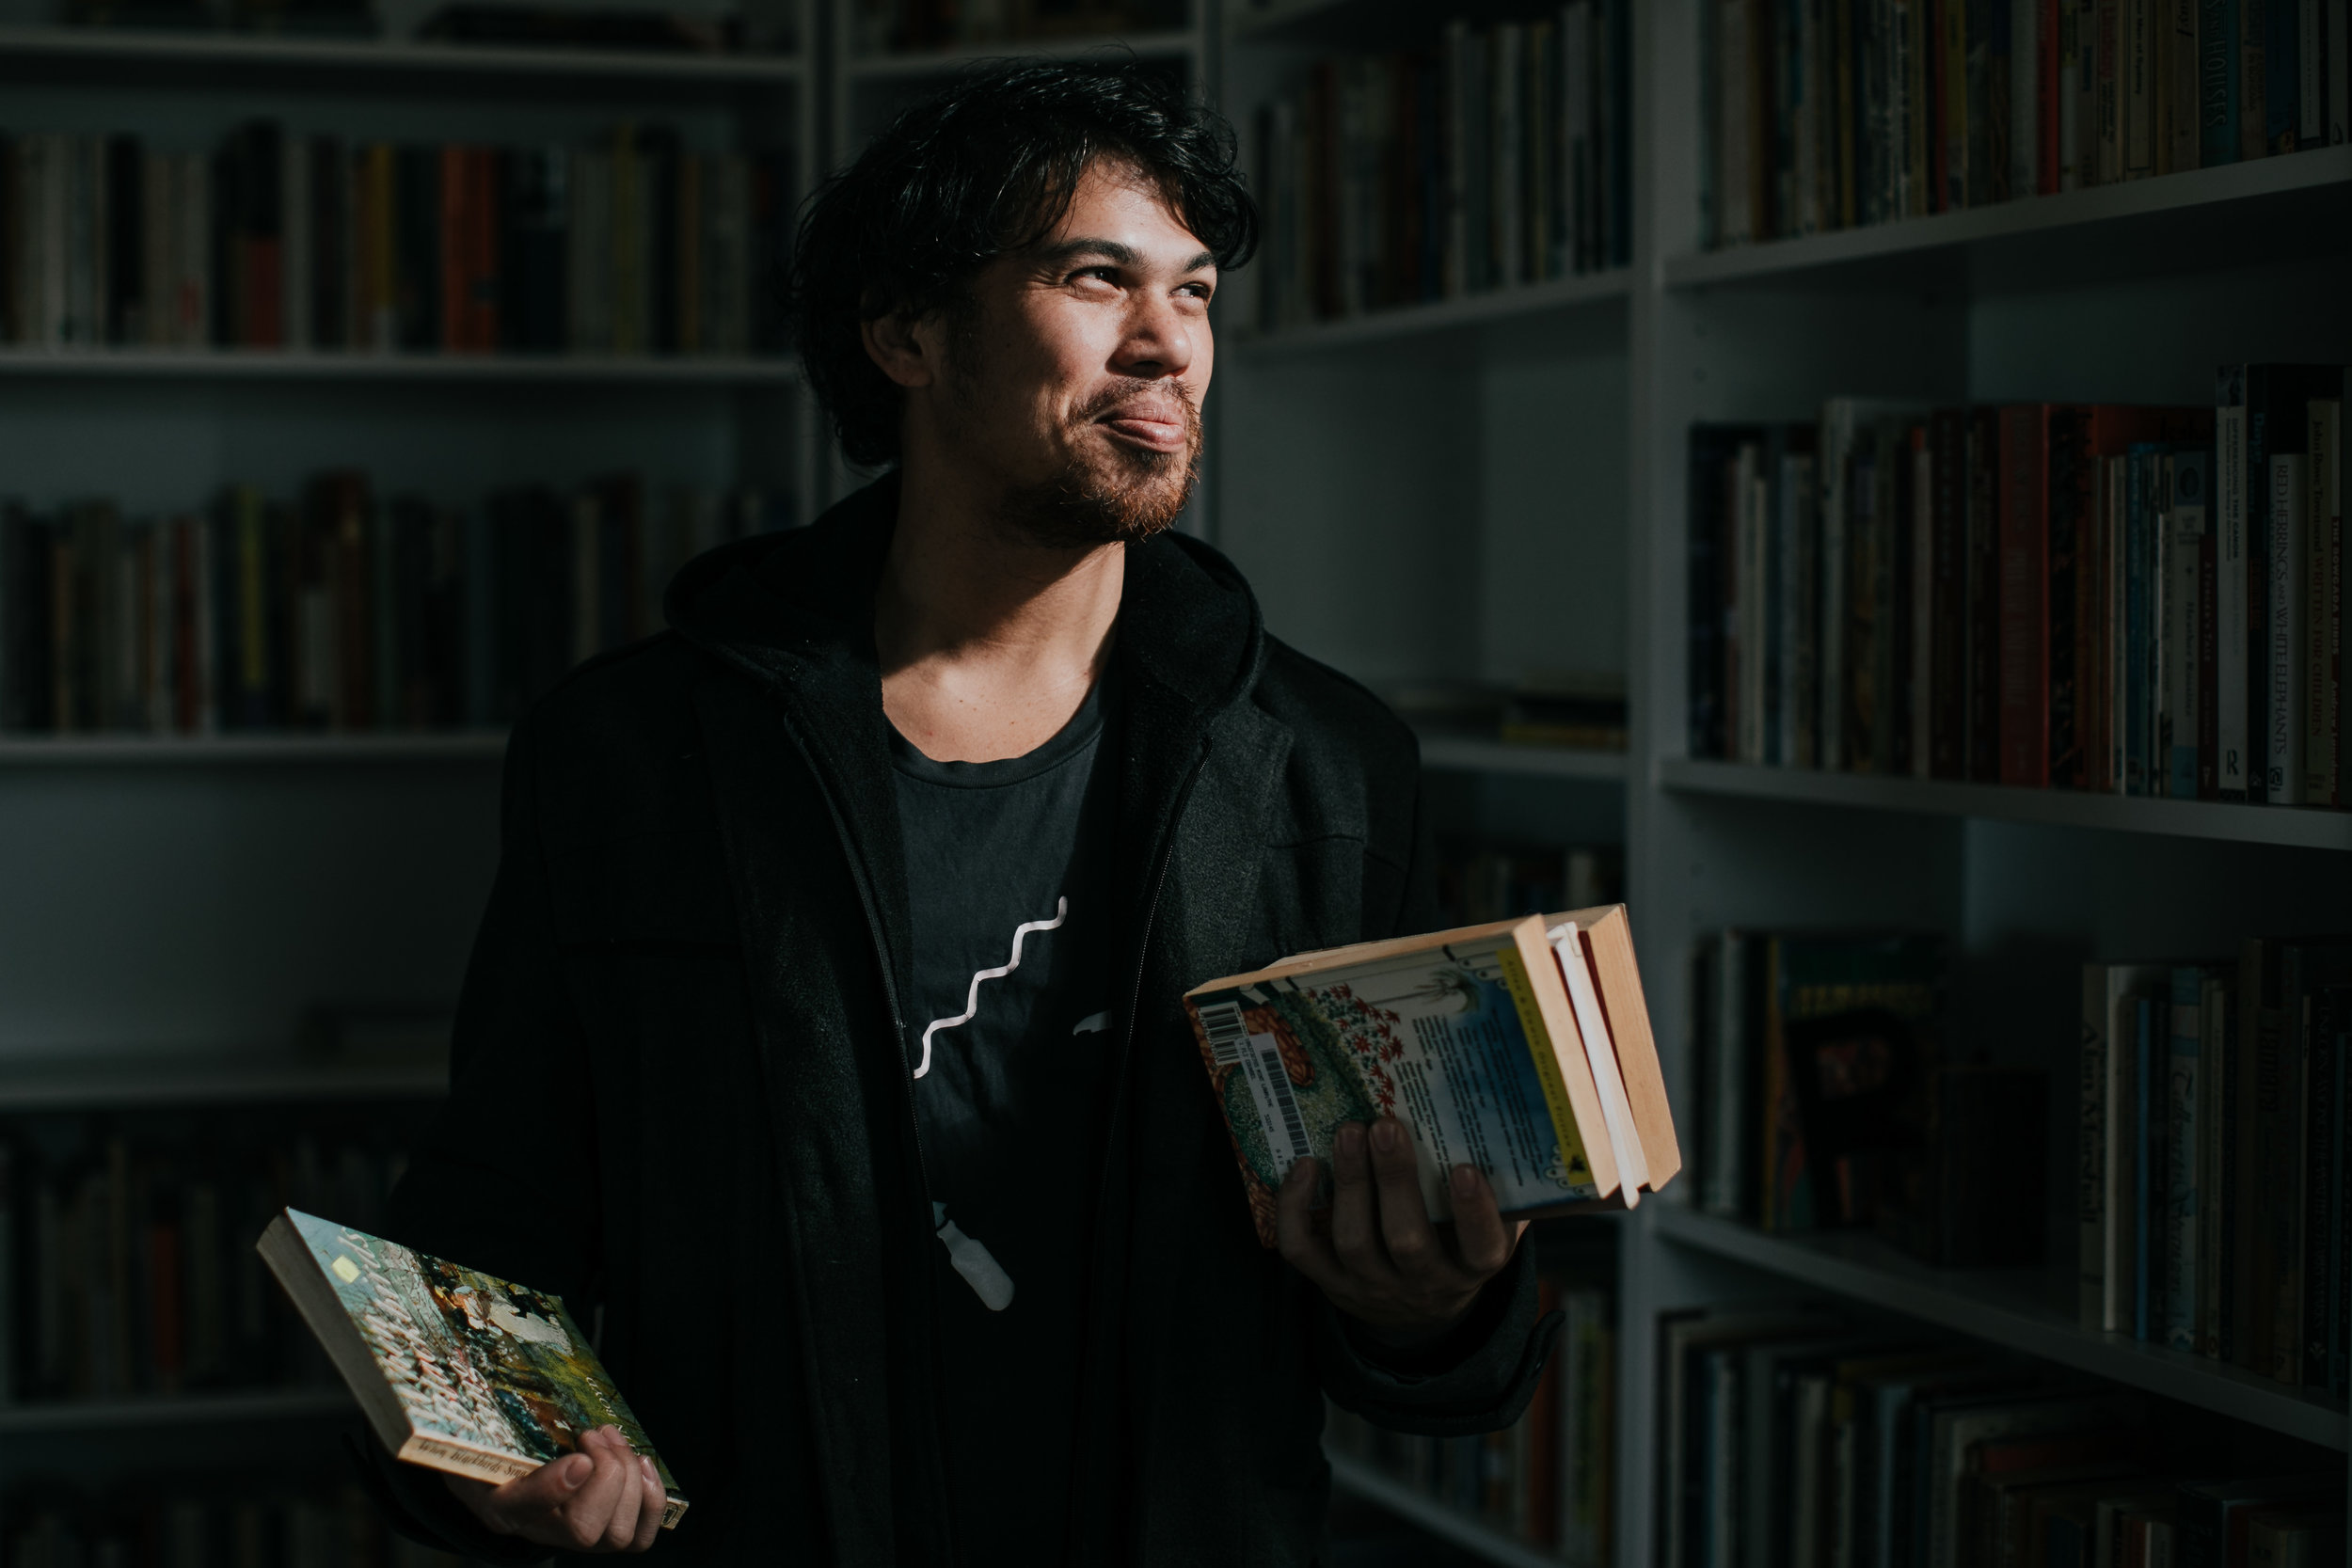 - A community artist, Paper Mountain and Propel Youth Arts WA board member, Steven is Project Coordinator for the Community Arts Network and is currently a Creative Fellow at the State Library of WA.